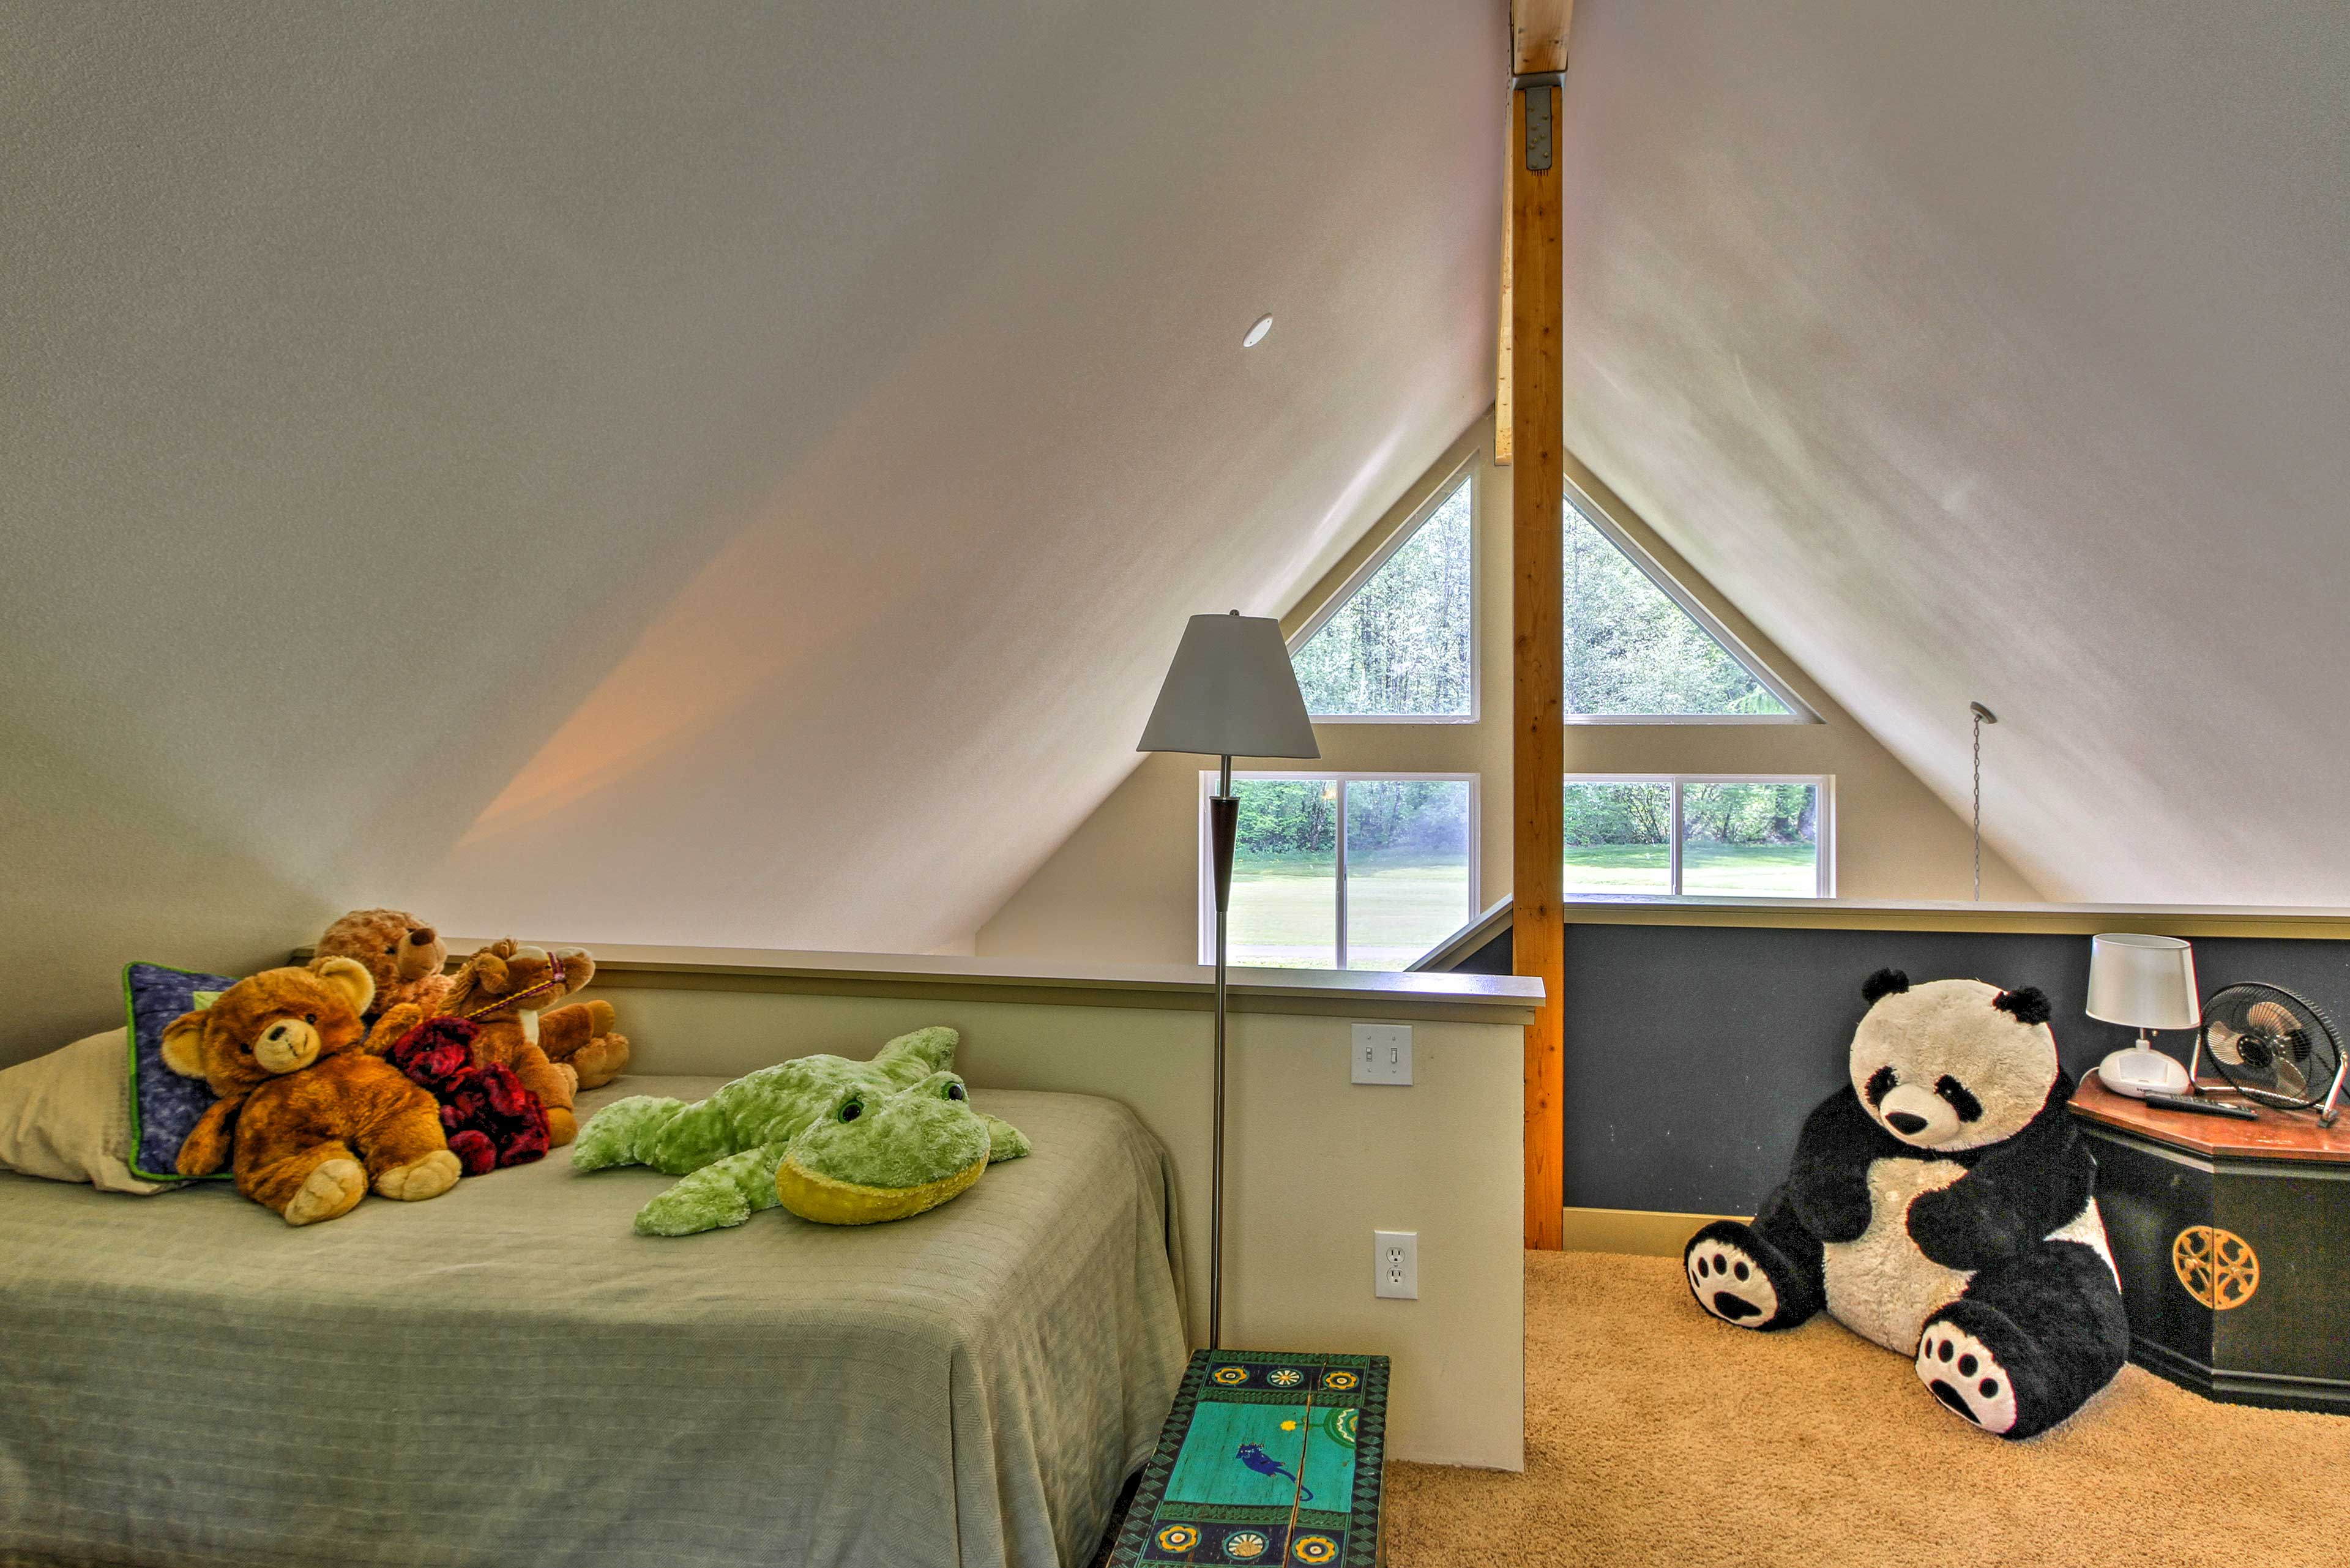 Tuck the little ones into bed with a stuffed animal!